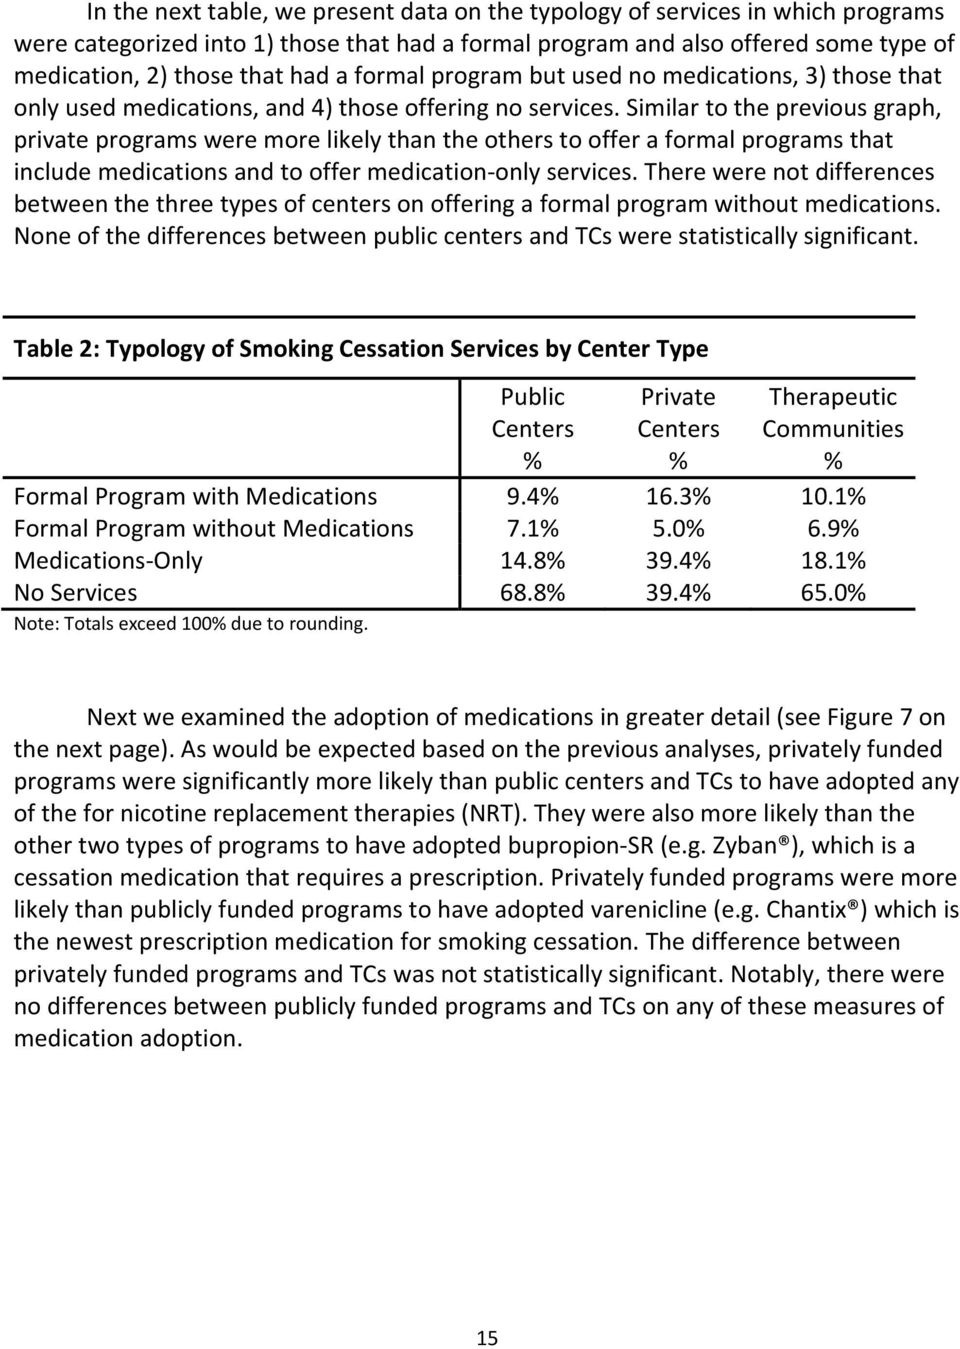 Similar to the previous graph, private programs were more likely than the others to offer a formal programs that include medications and to offer medication only services.